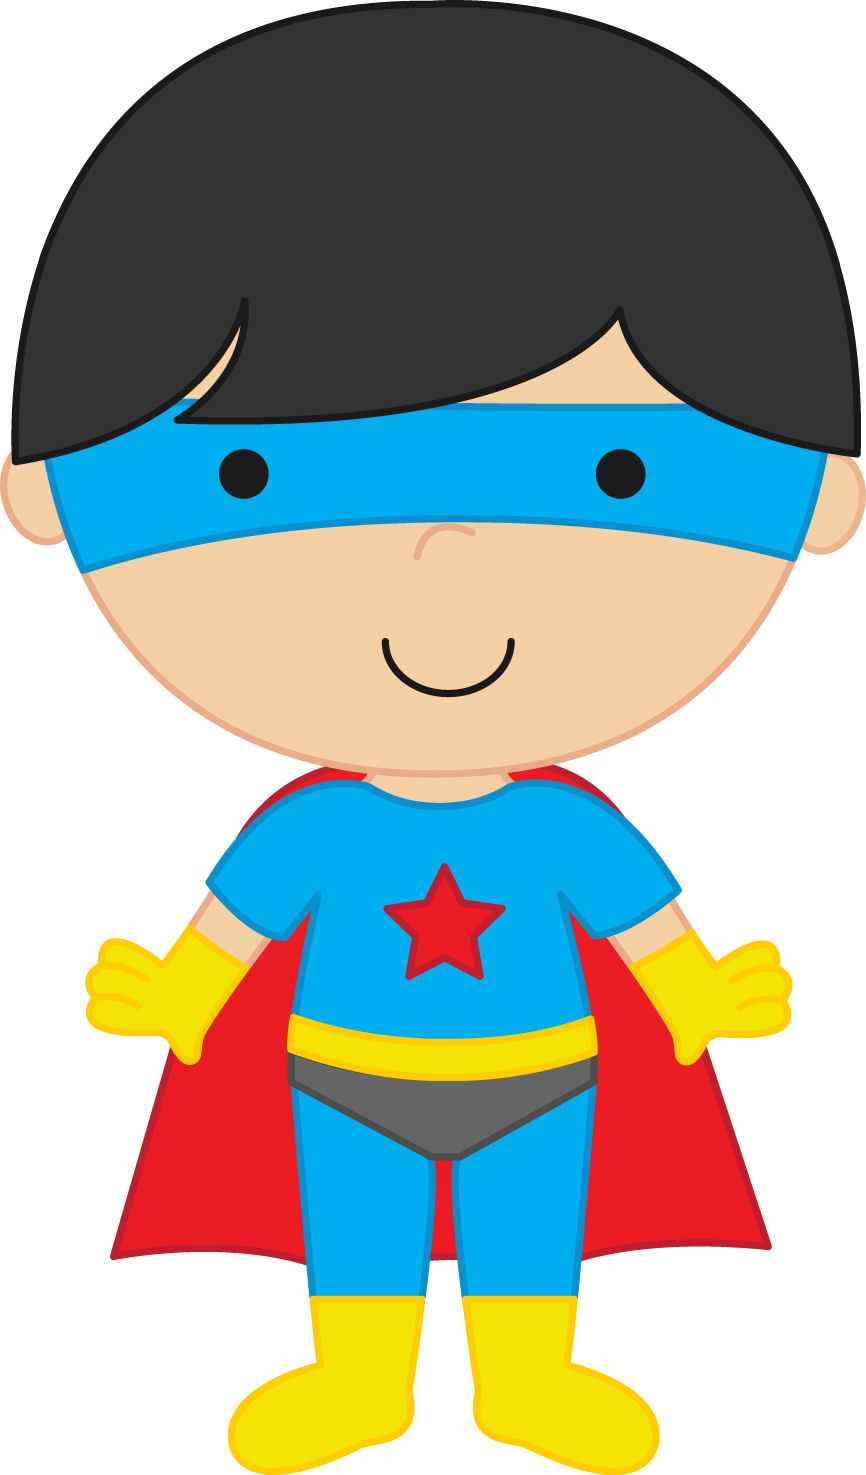 866x1475 Free Download Super Boy Clipart For Your Creation. Special